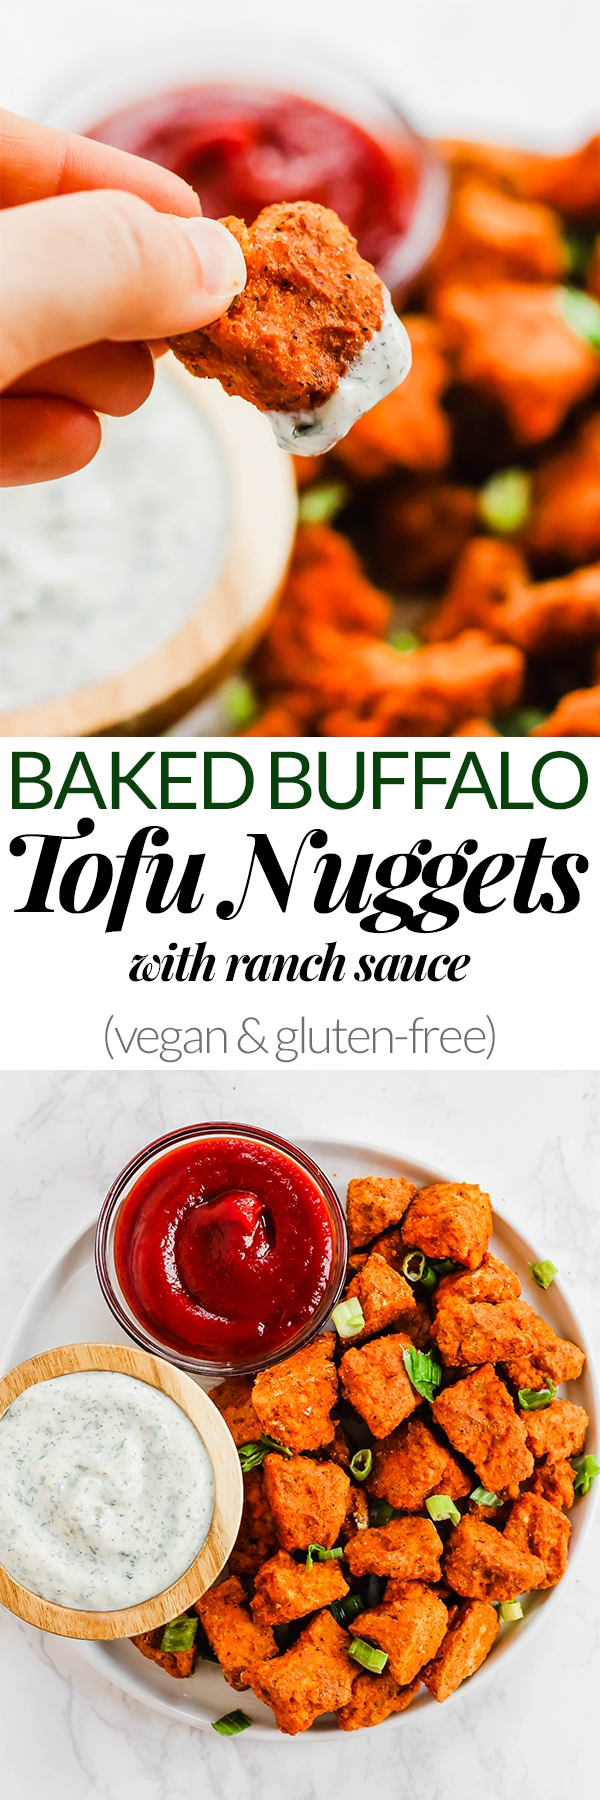 These Baked Buffalo Tofu Nuggets are a fun snack or side dish for kids and adults alike! Serve them witha dairy-free ranch sauce for the ultimate appetizer. (vegan & gluten-free)